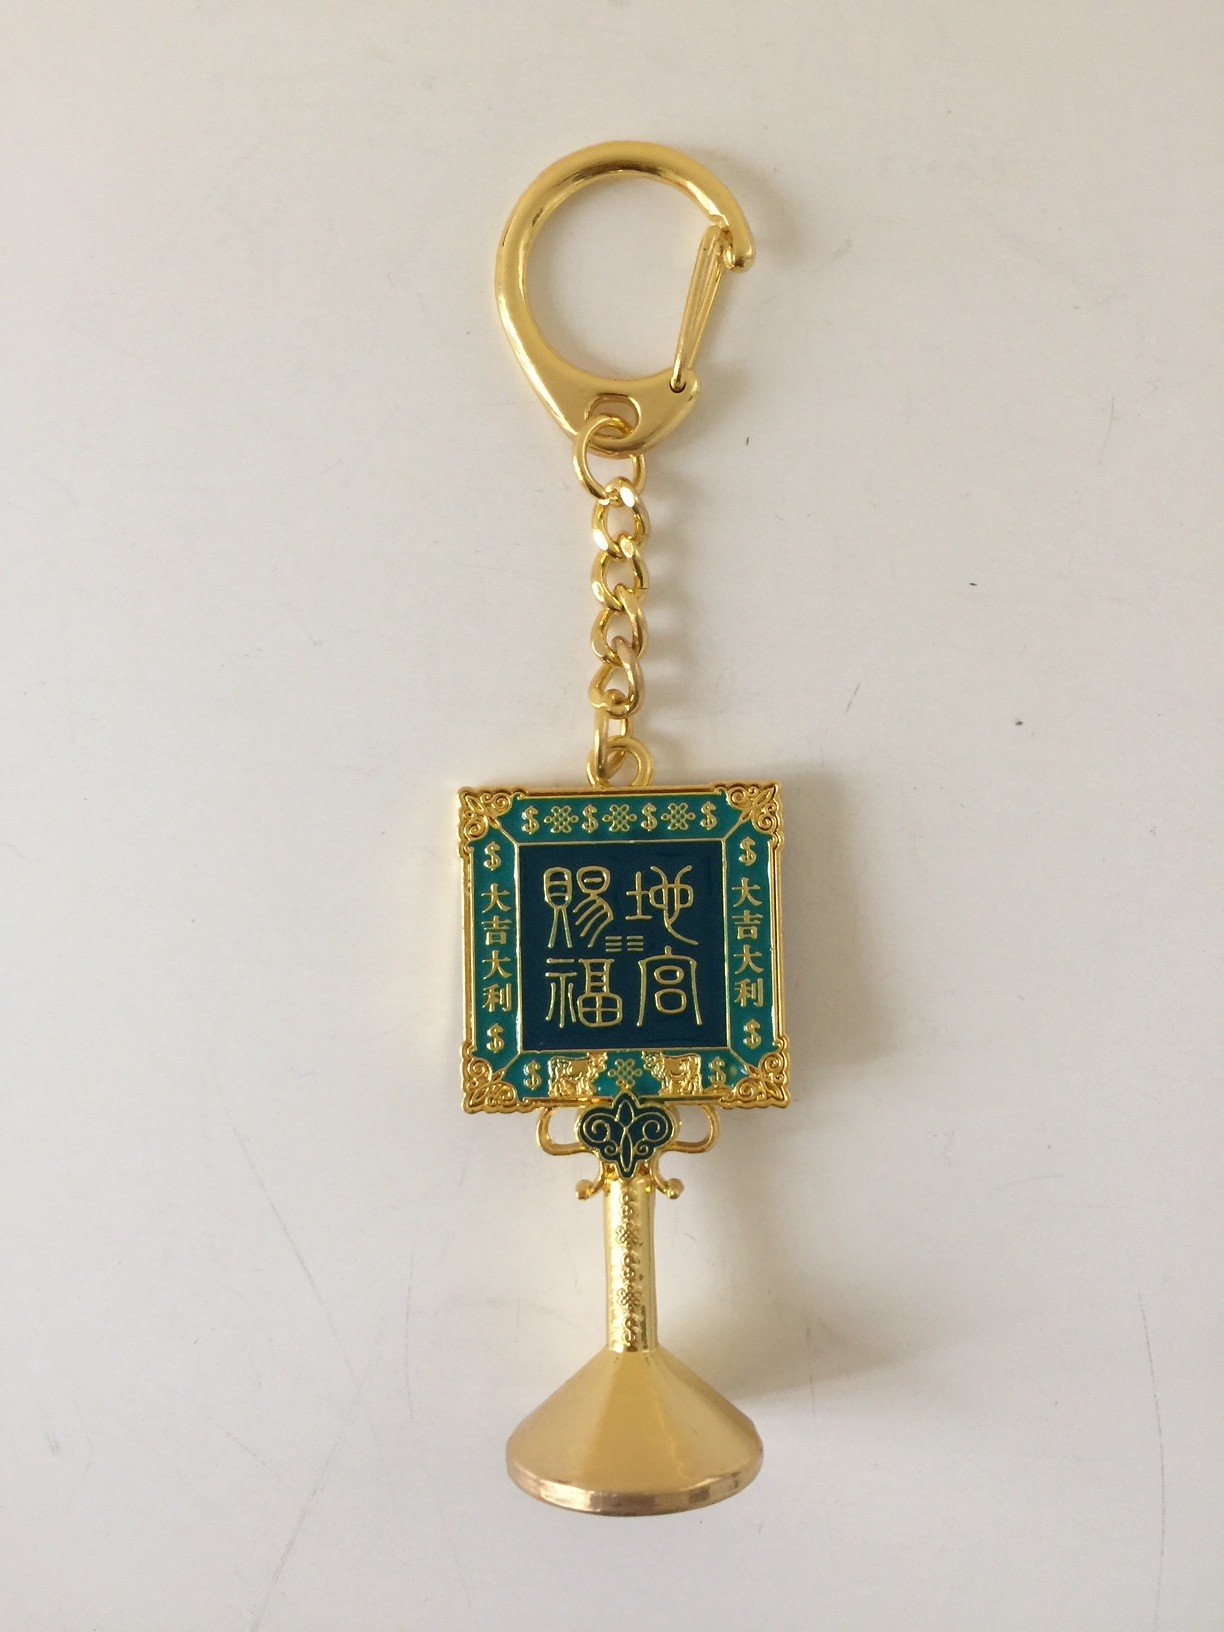 Feng Shui Big & Small Auspicious Mirror Amulet Keychain USA Seller by Mylucky